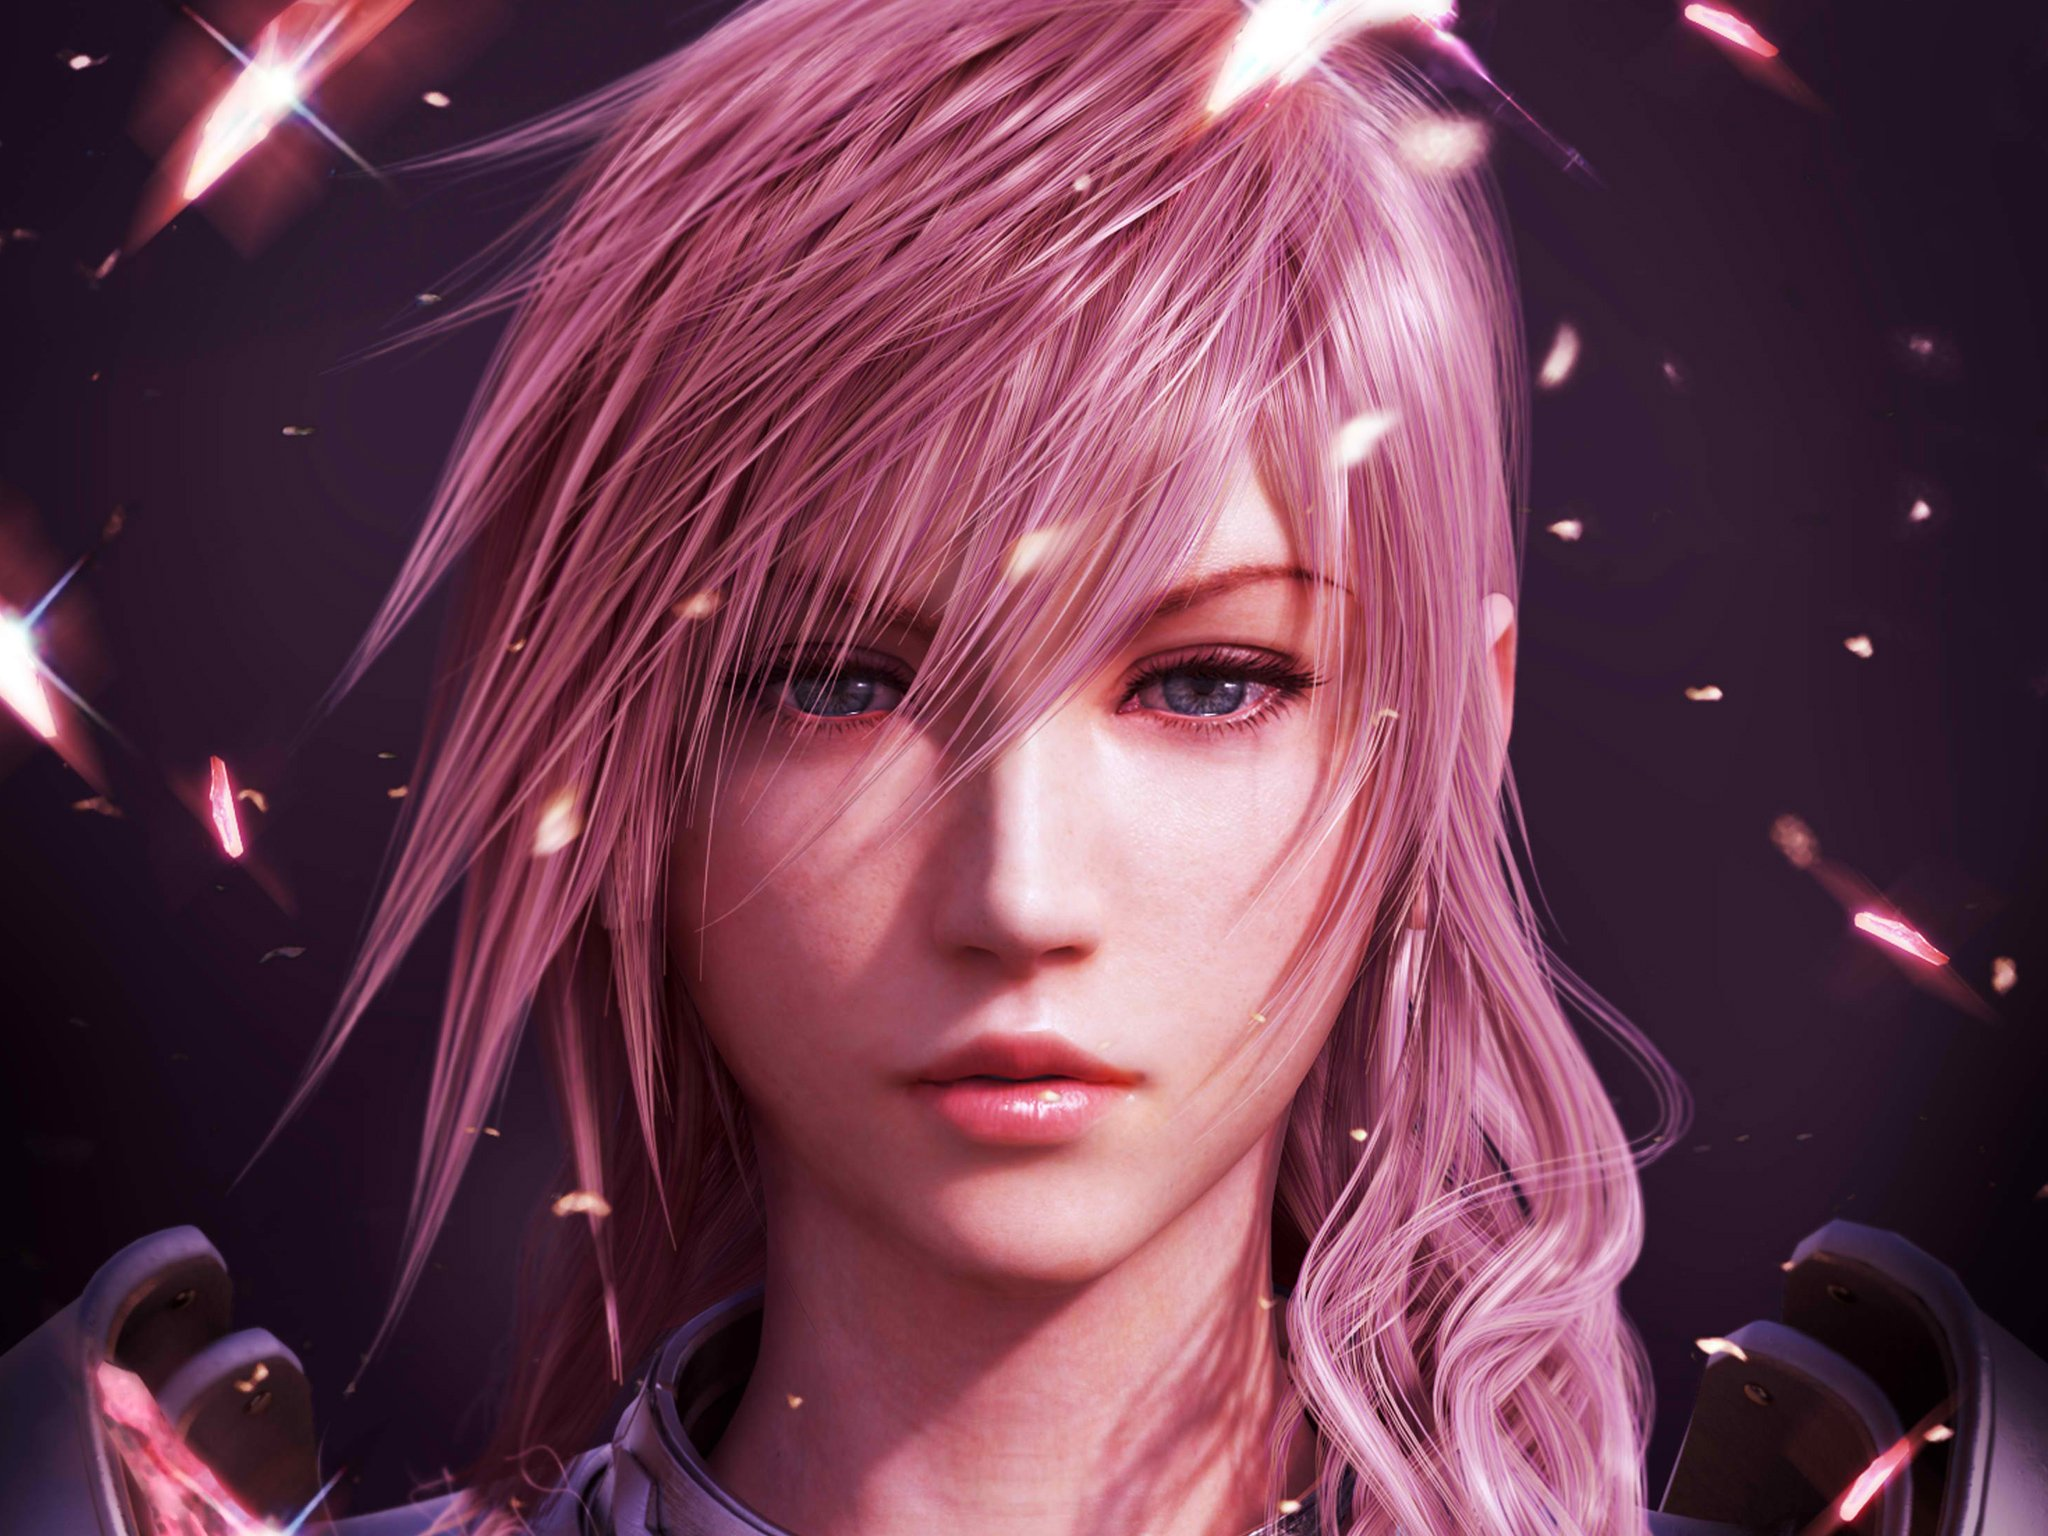 Lightning Final Fantasy Wallpapers HD Wallpapers 2048x1536